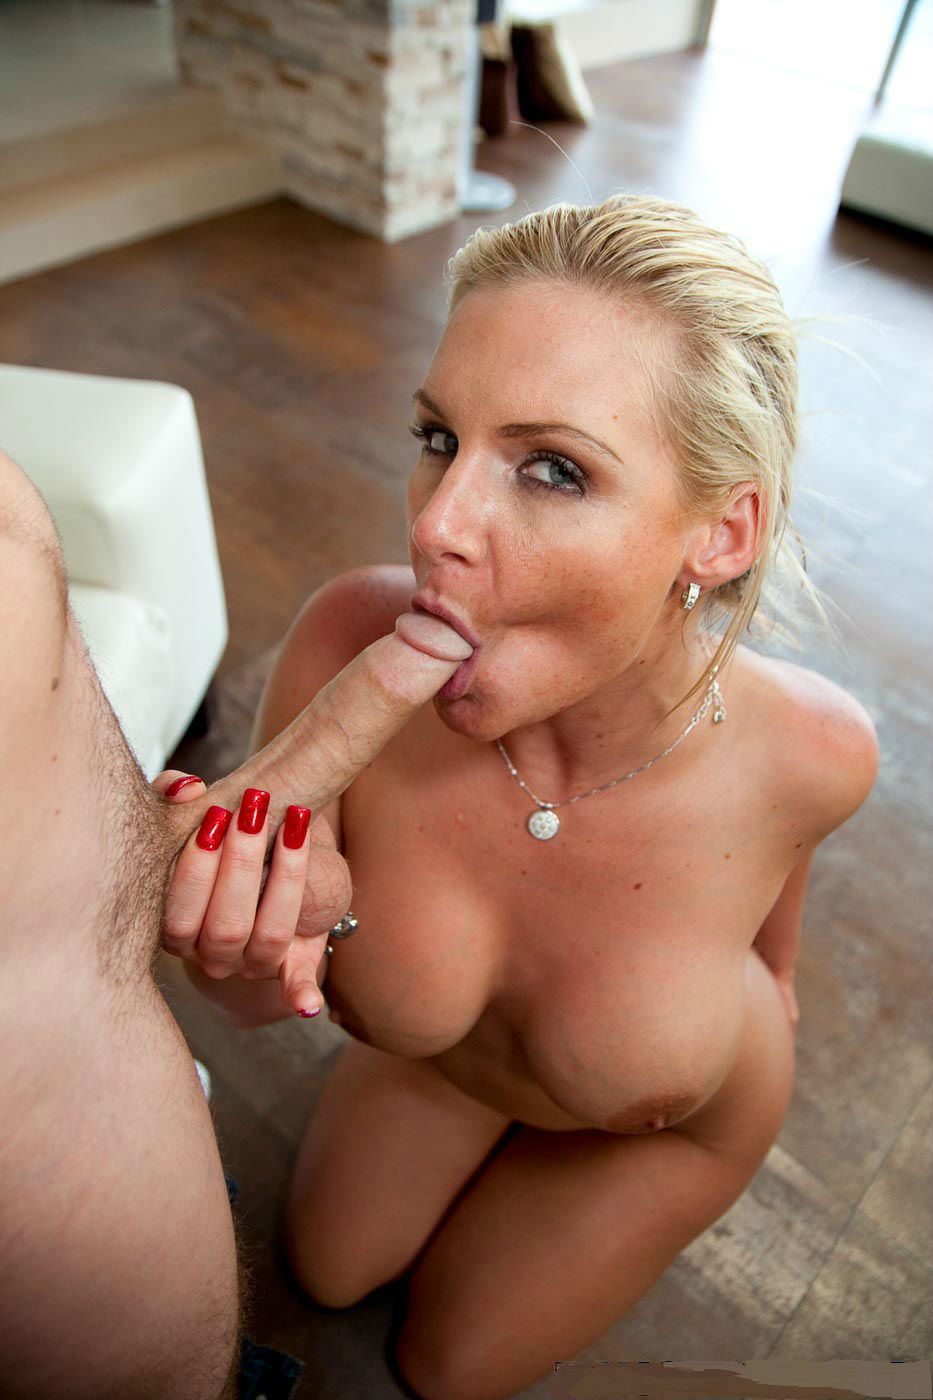 post alexis texas giving some nice ass blowjob therapy